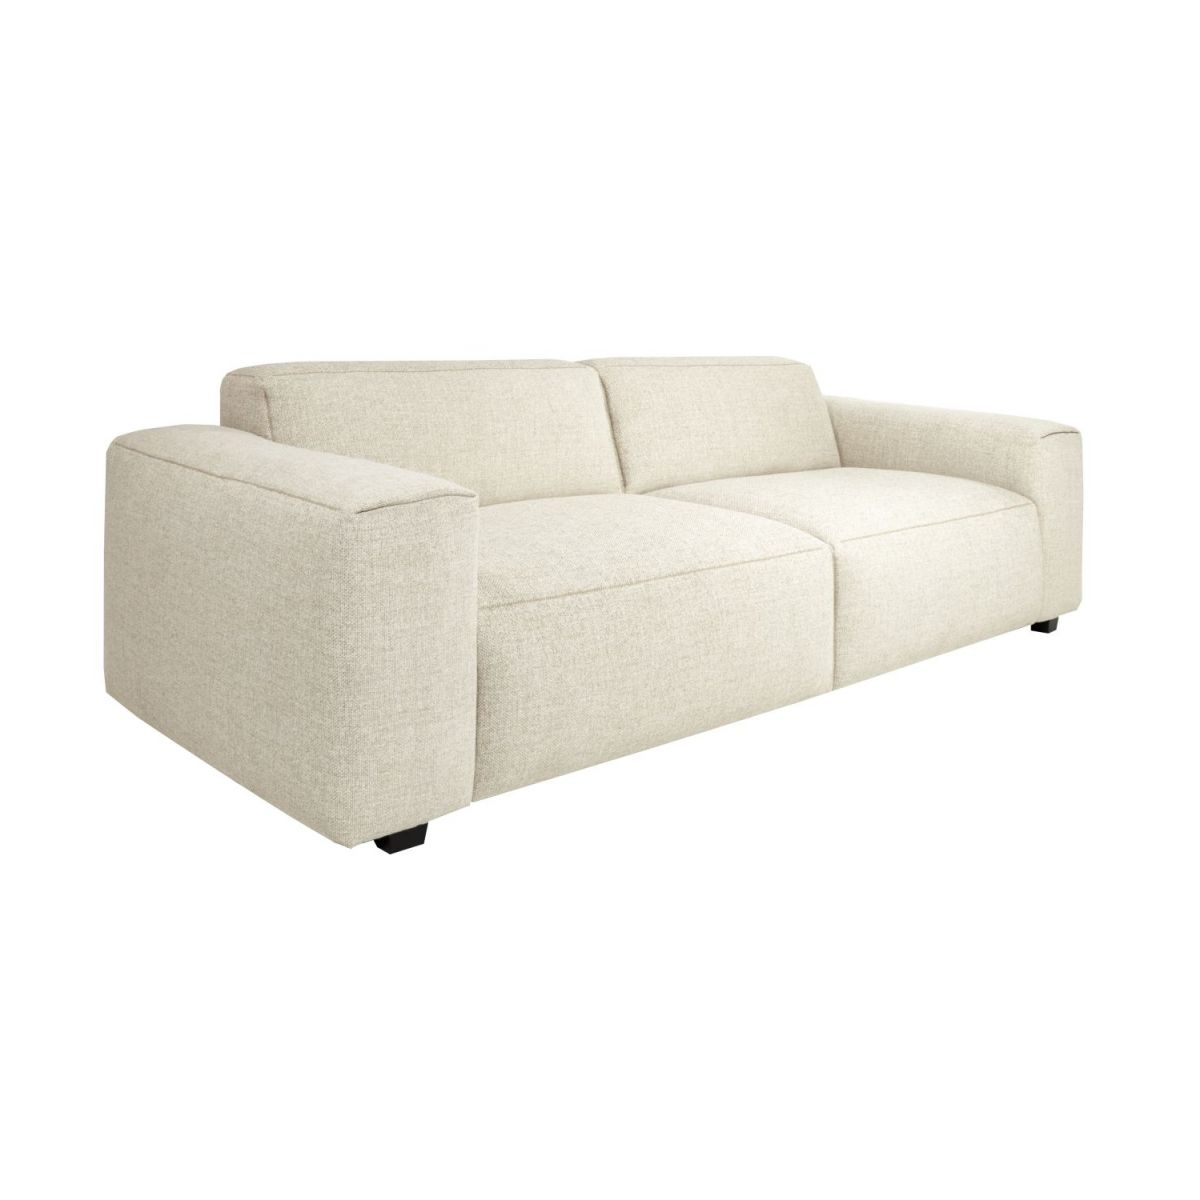 2 seater sofa in Lecce fabric, nature n°1